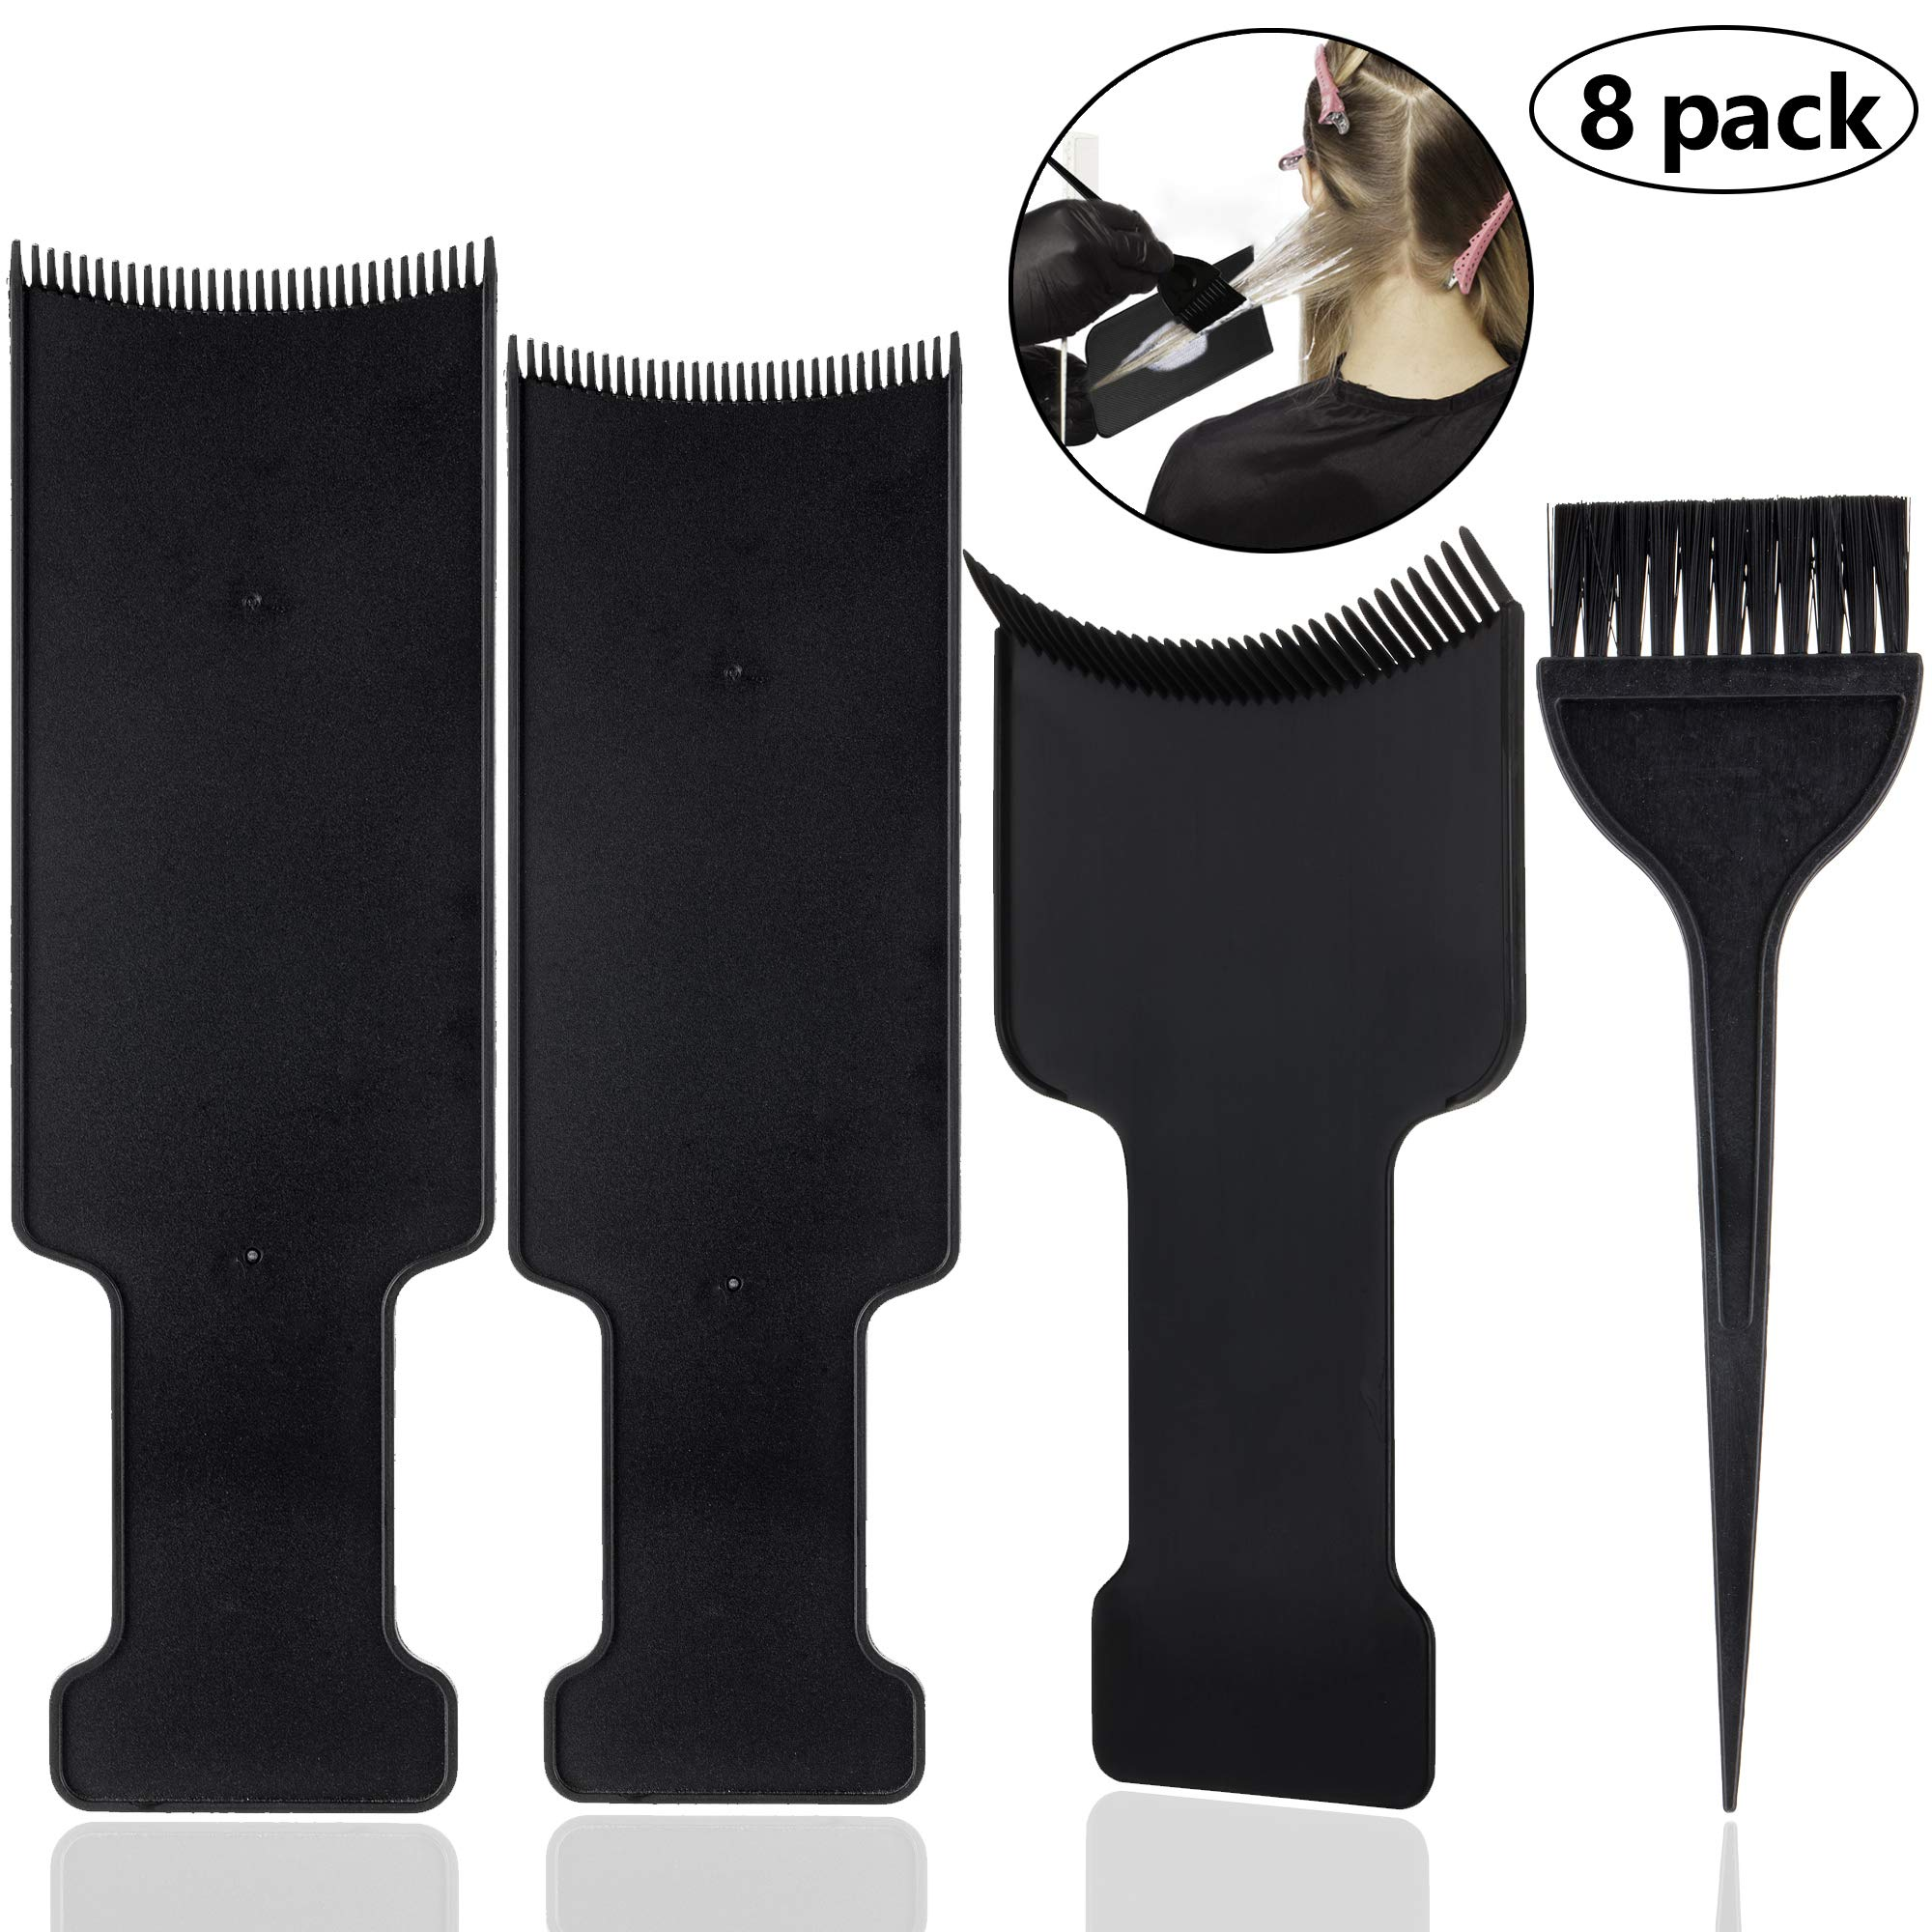 8 Pcs Hair Highlighting Board and Brush Kit, 6 Pcs Flat Top Comb Board Paddle and 2 Piece Hair Coloring Brush for Hair Dye and Salon Uses by HANJIAONI